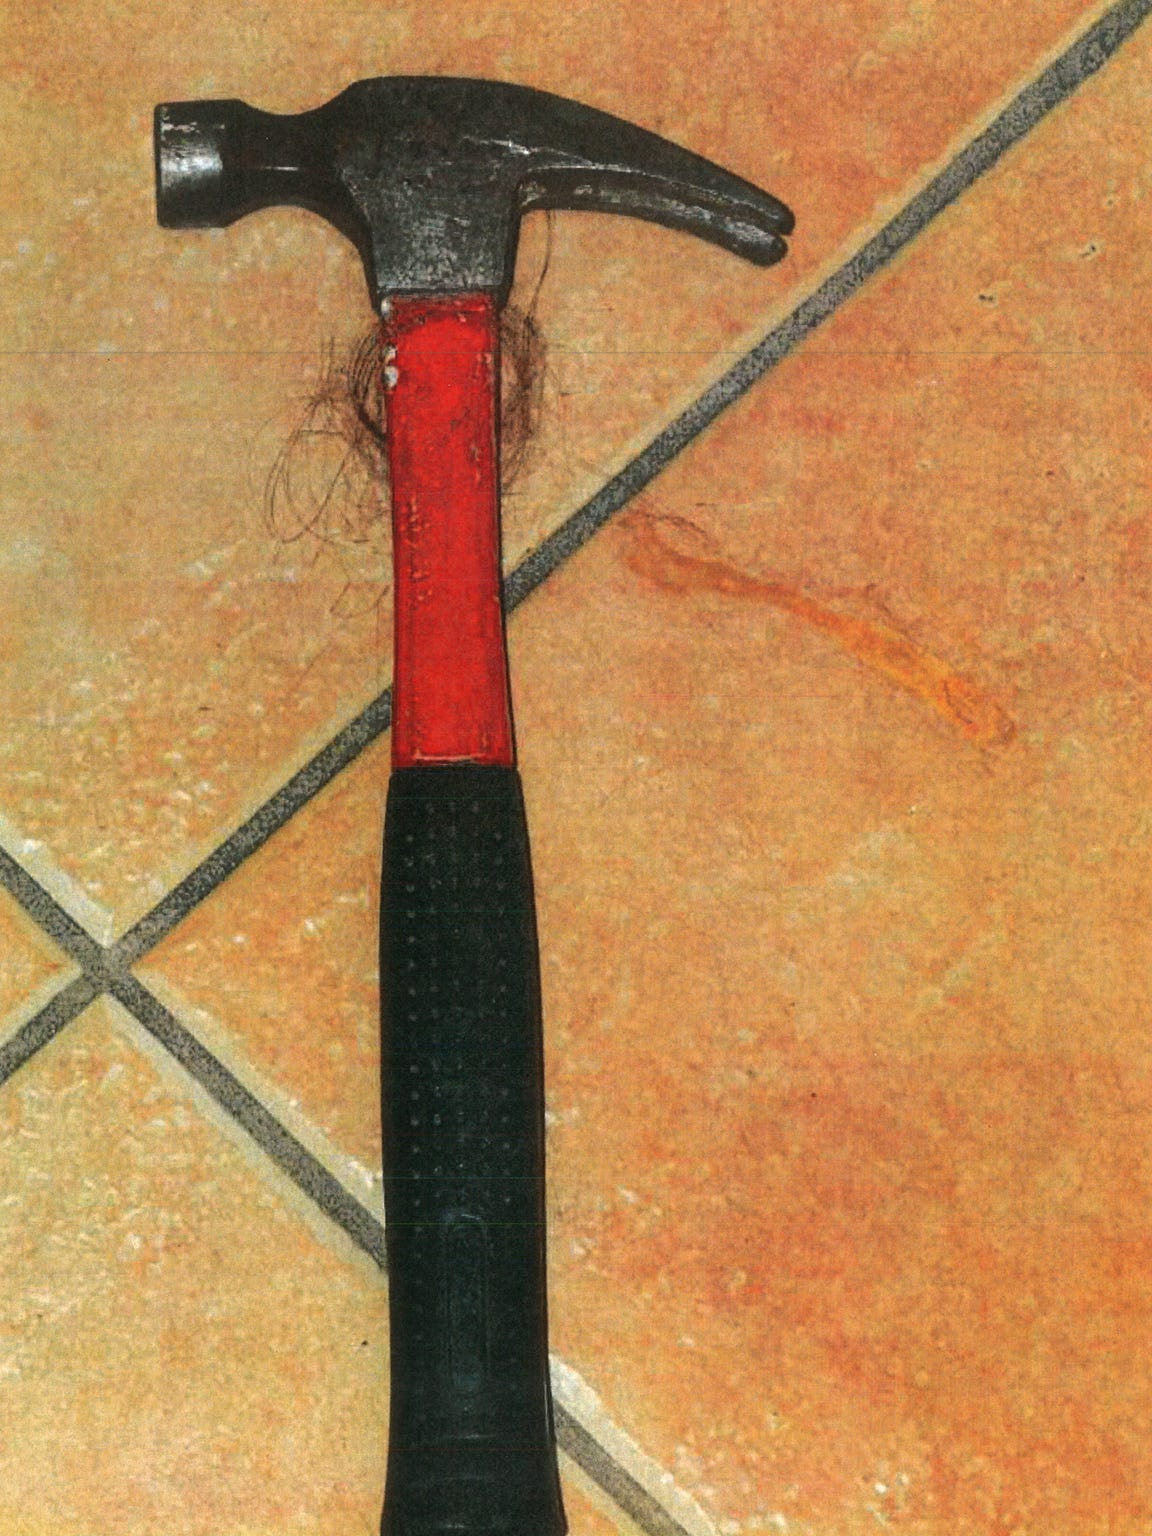 A hammer found at the crime scene in the homicide of